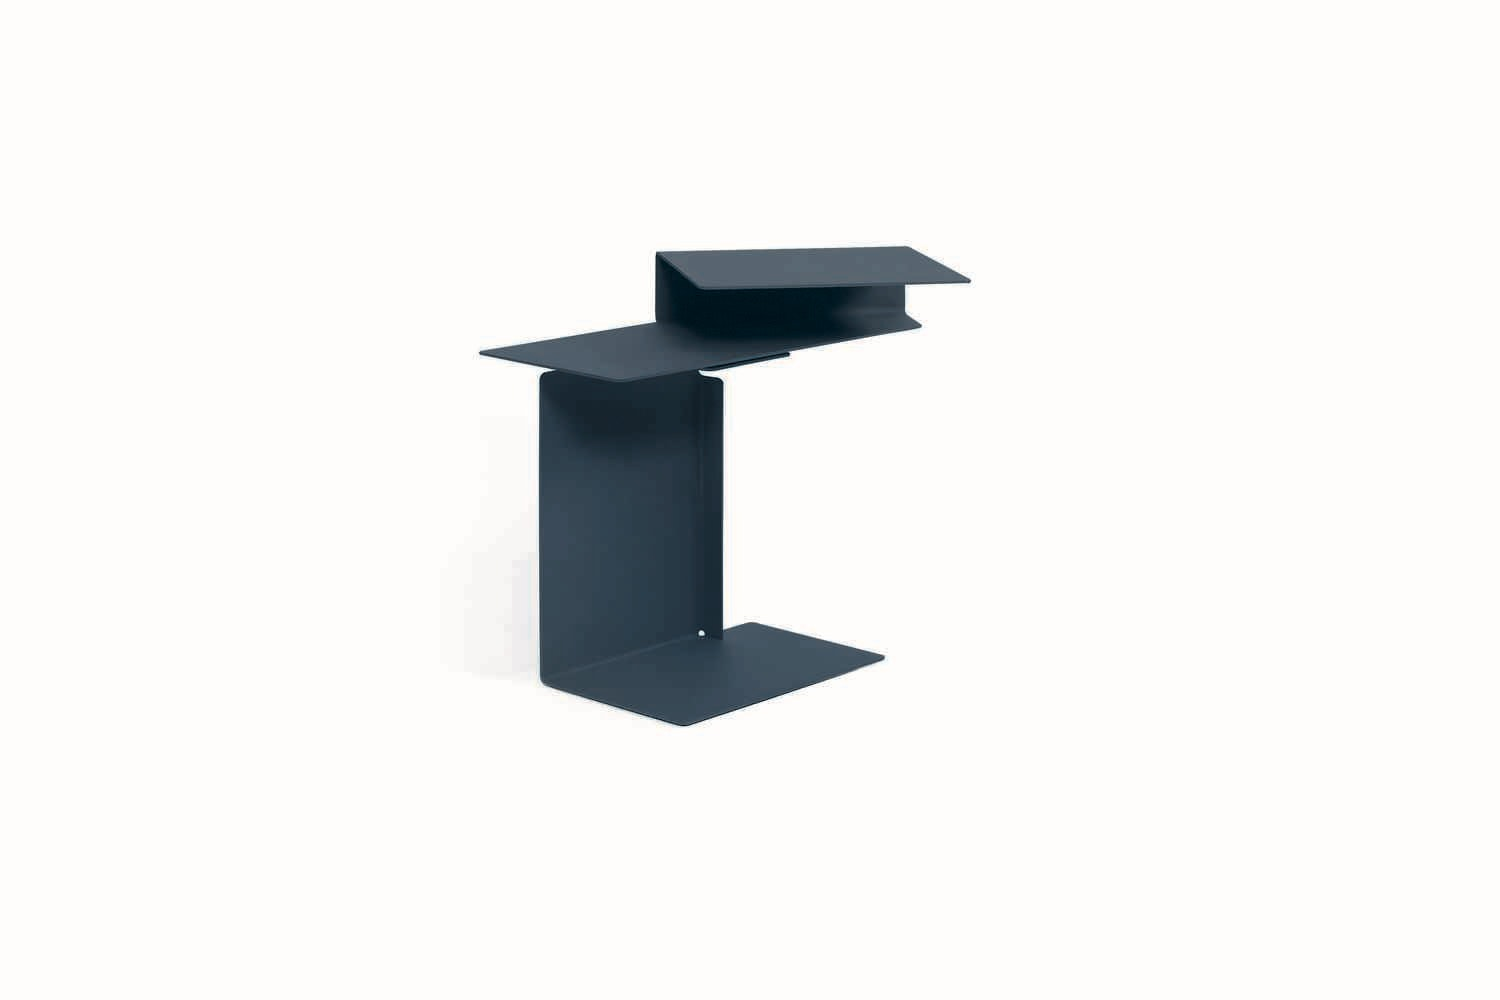 Diana E by Konstantin Grcic for ClassiCon